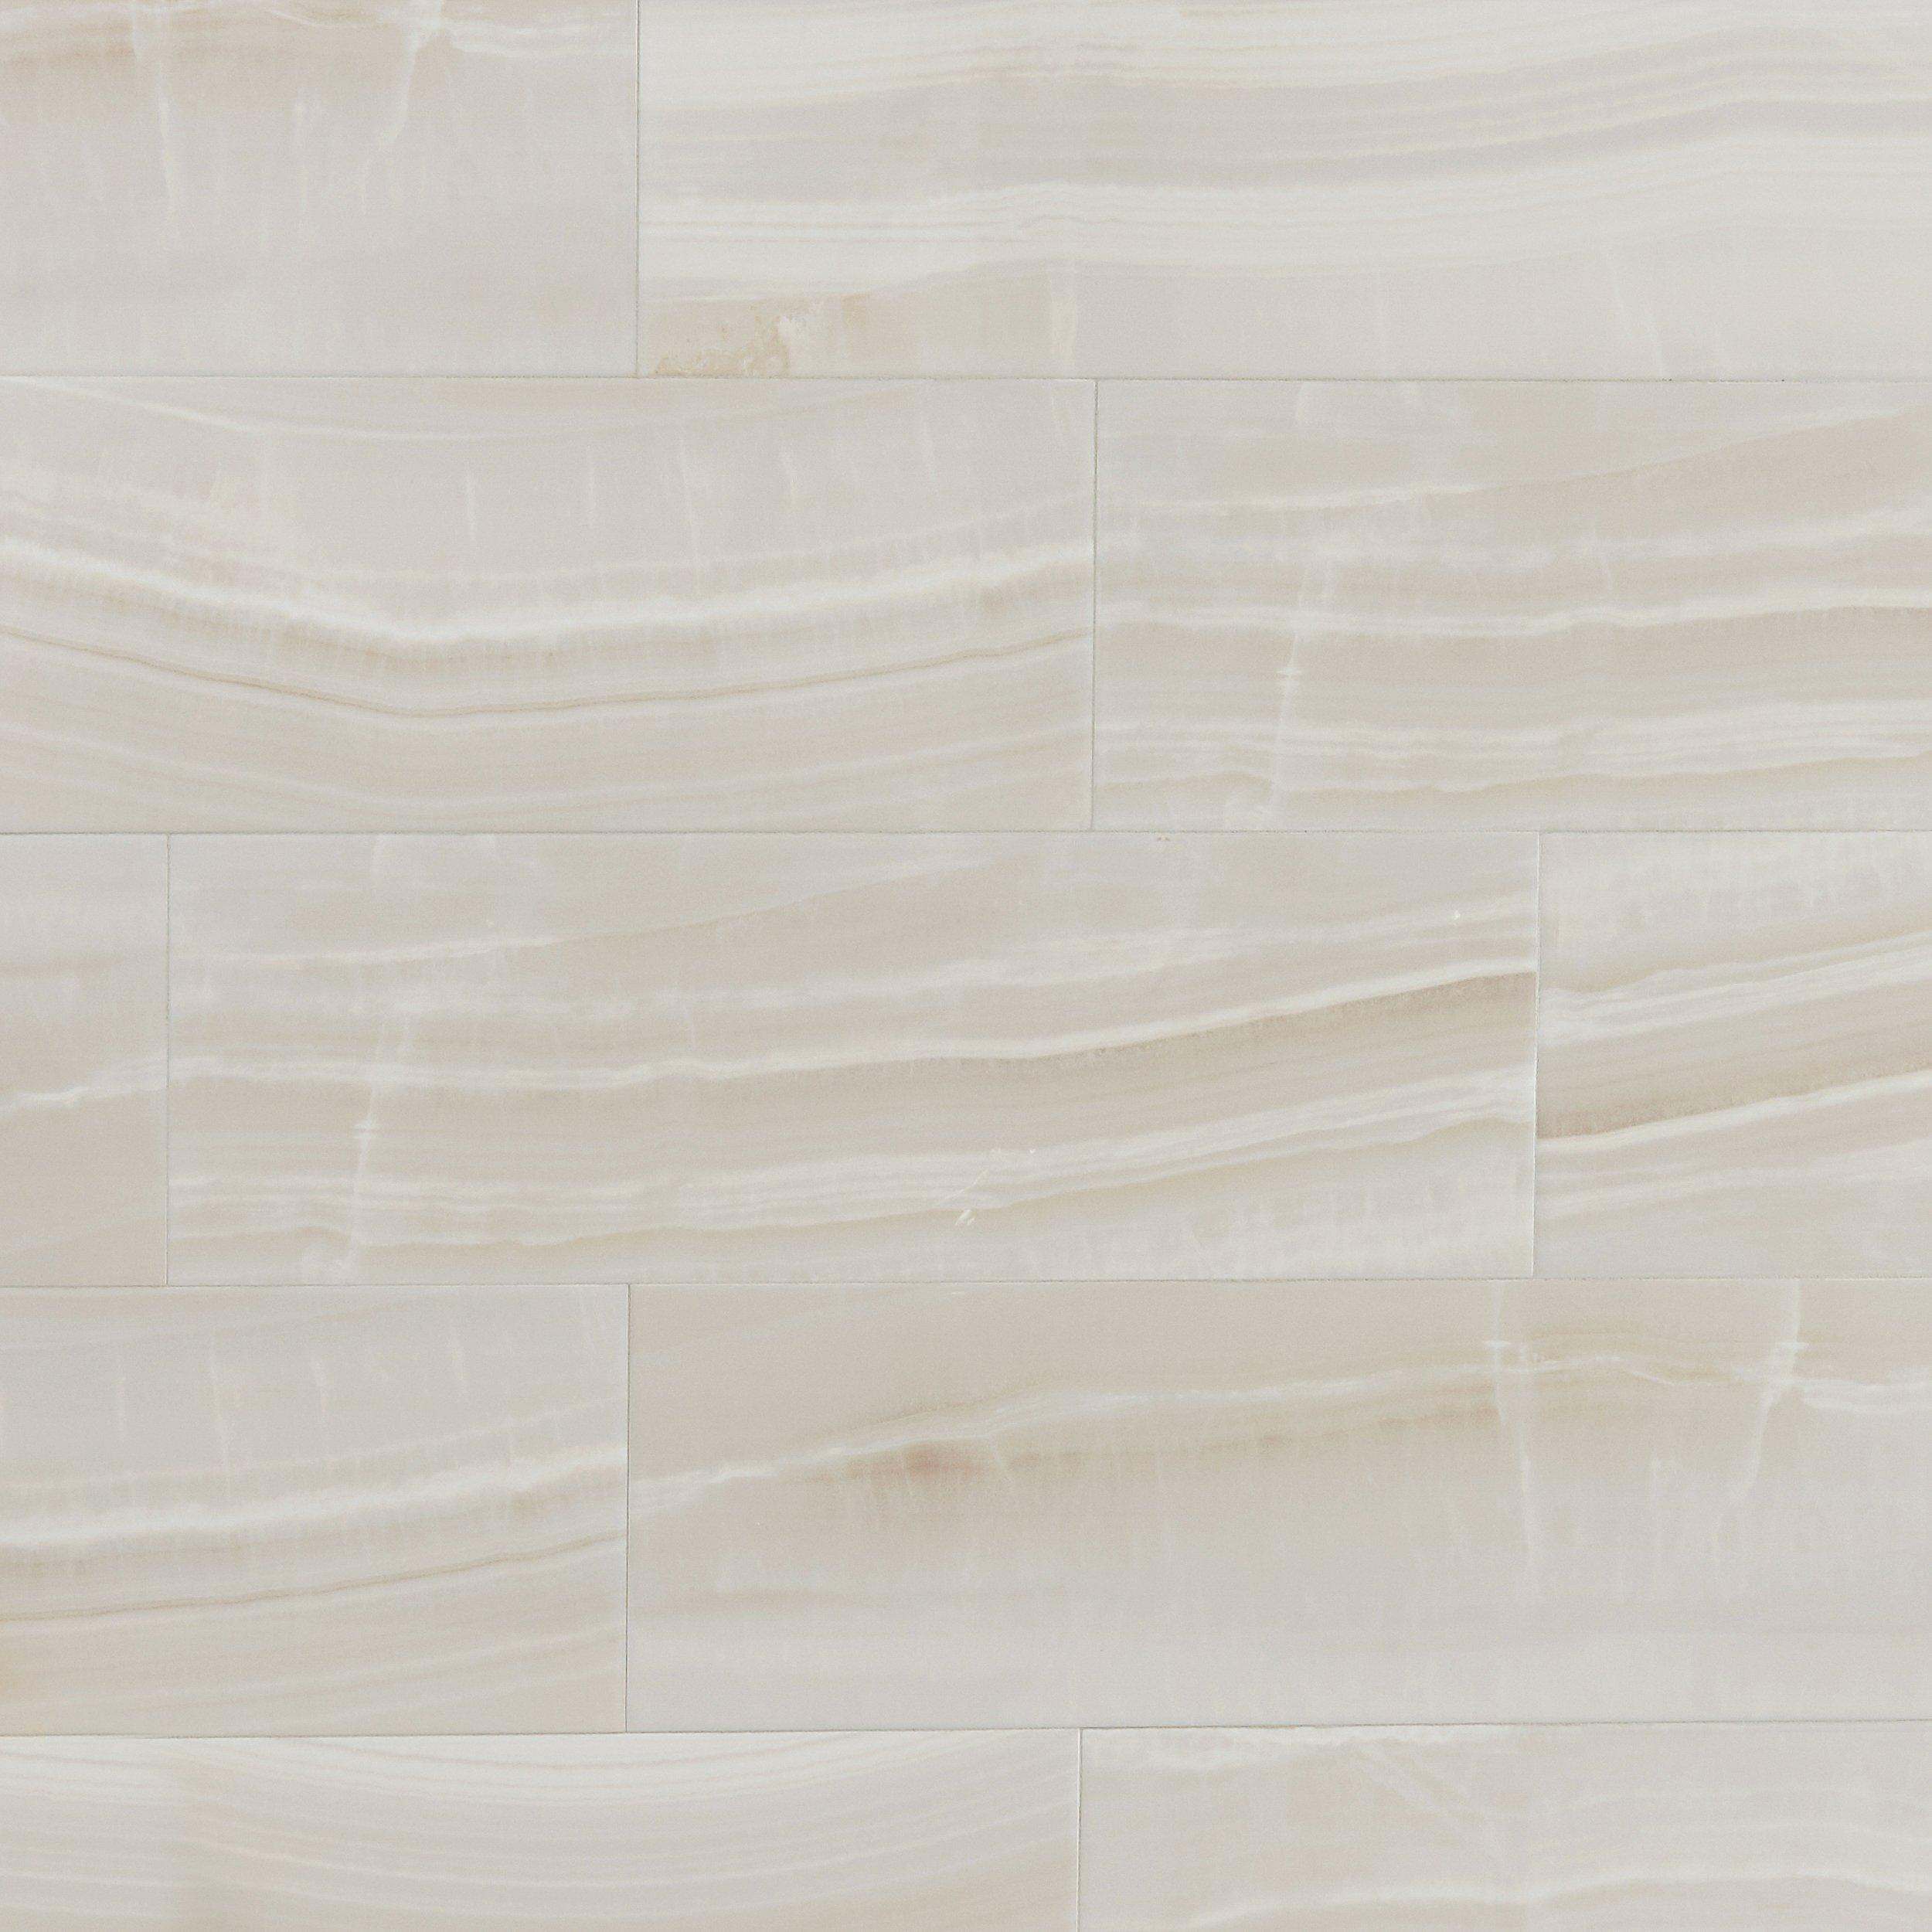 Onyx Ceramic Wall Tile 8in x 24in 100189117 Floor and Decor